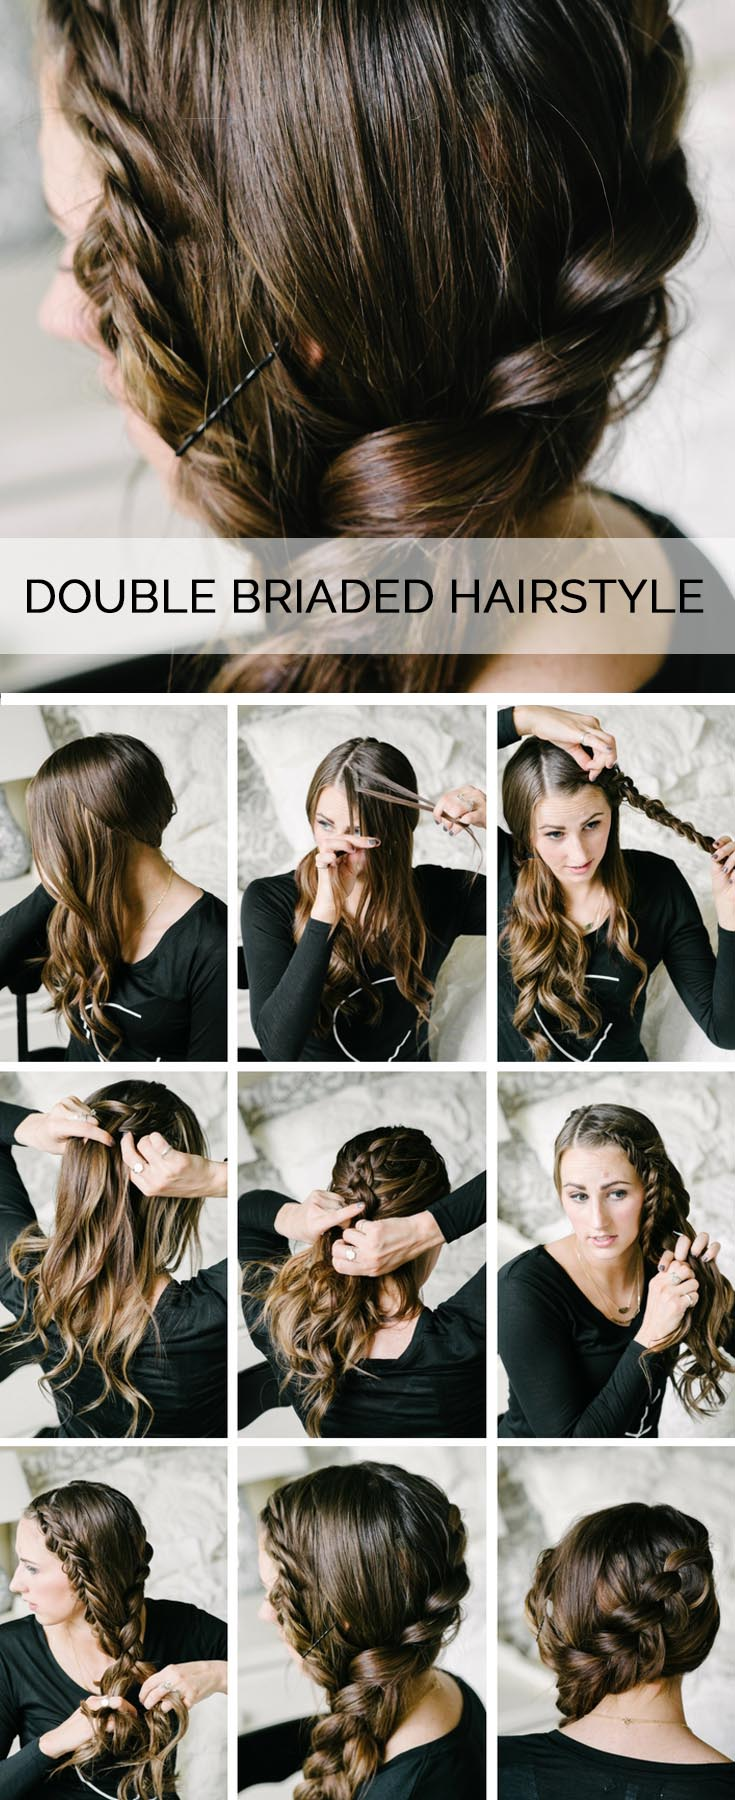 double-braided-hairstyle